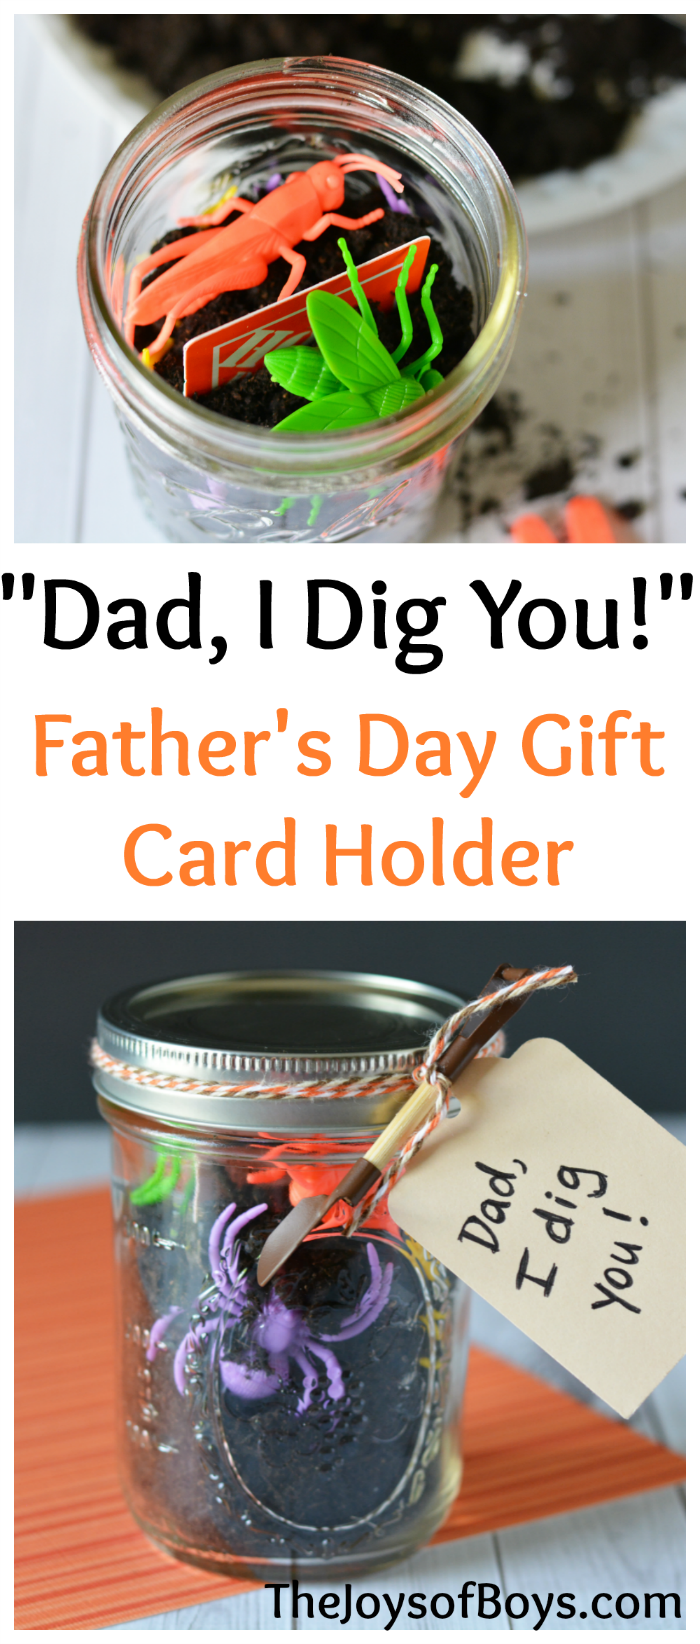 Father's Day Gift Card Holder